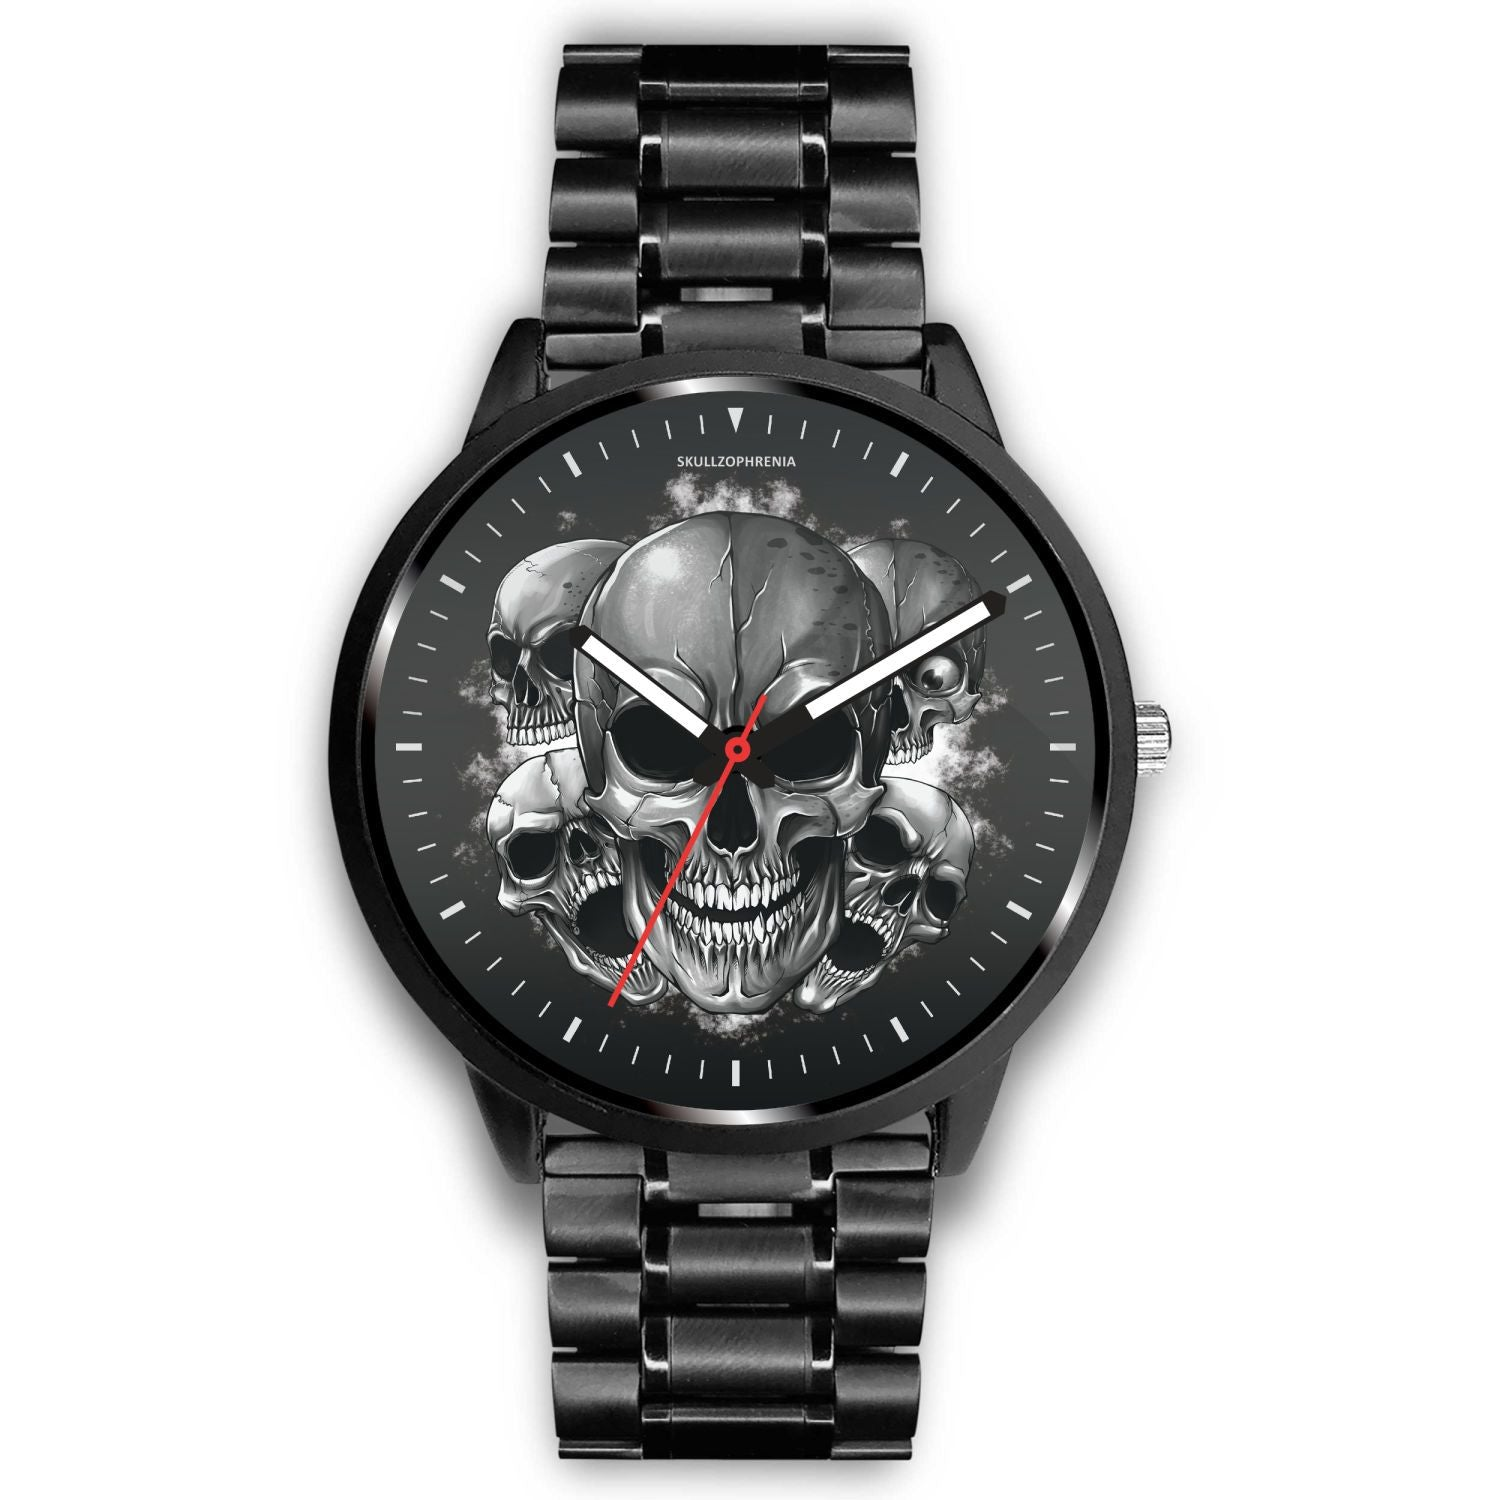 Dark Skulls Prime Watch-Watch-wc-fulfillment-Mens 40mm-Metal Link-SKULLZOPHRENIA